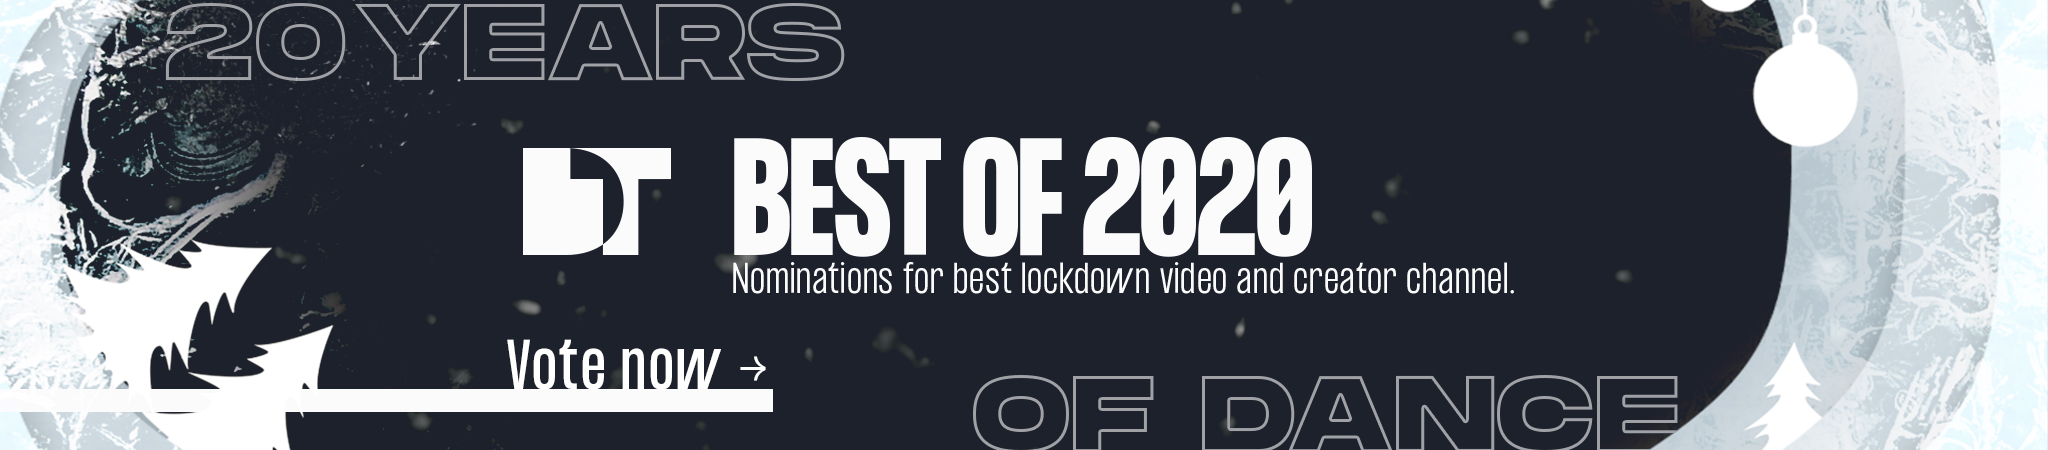 Vote for your favourite vids and creators!